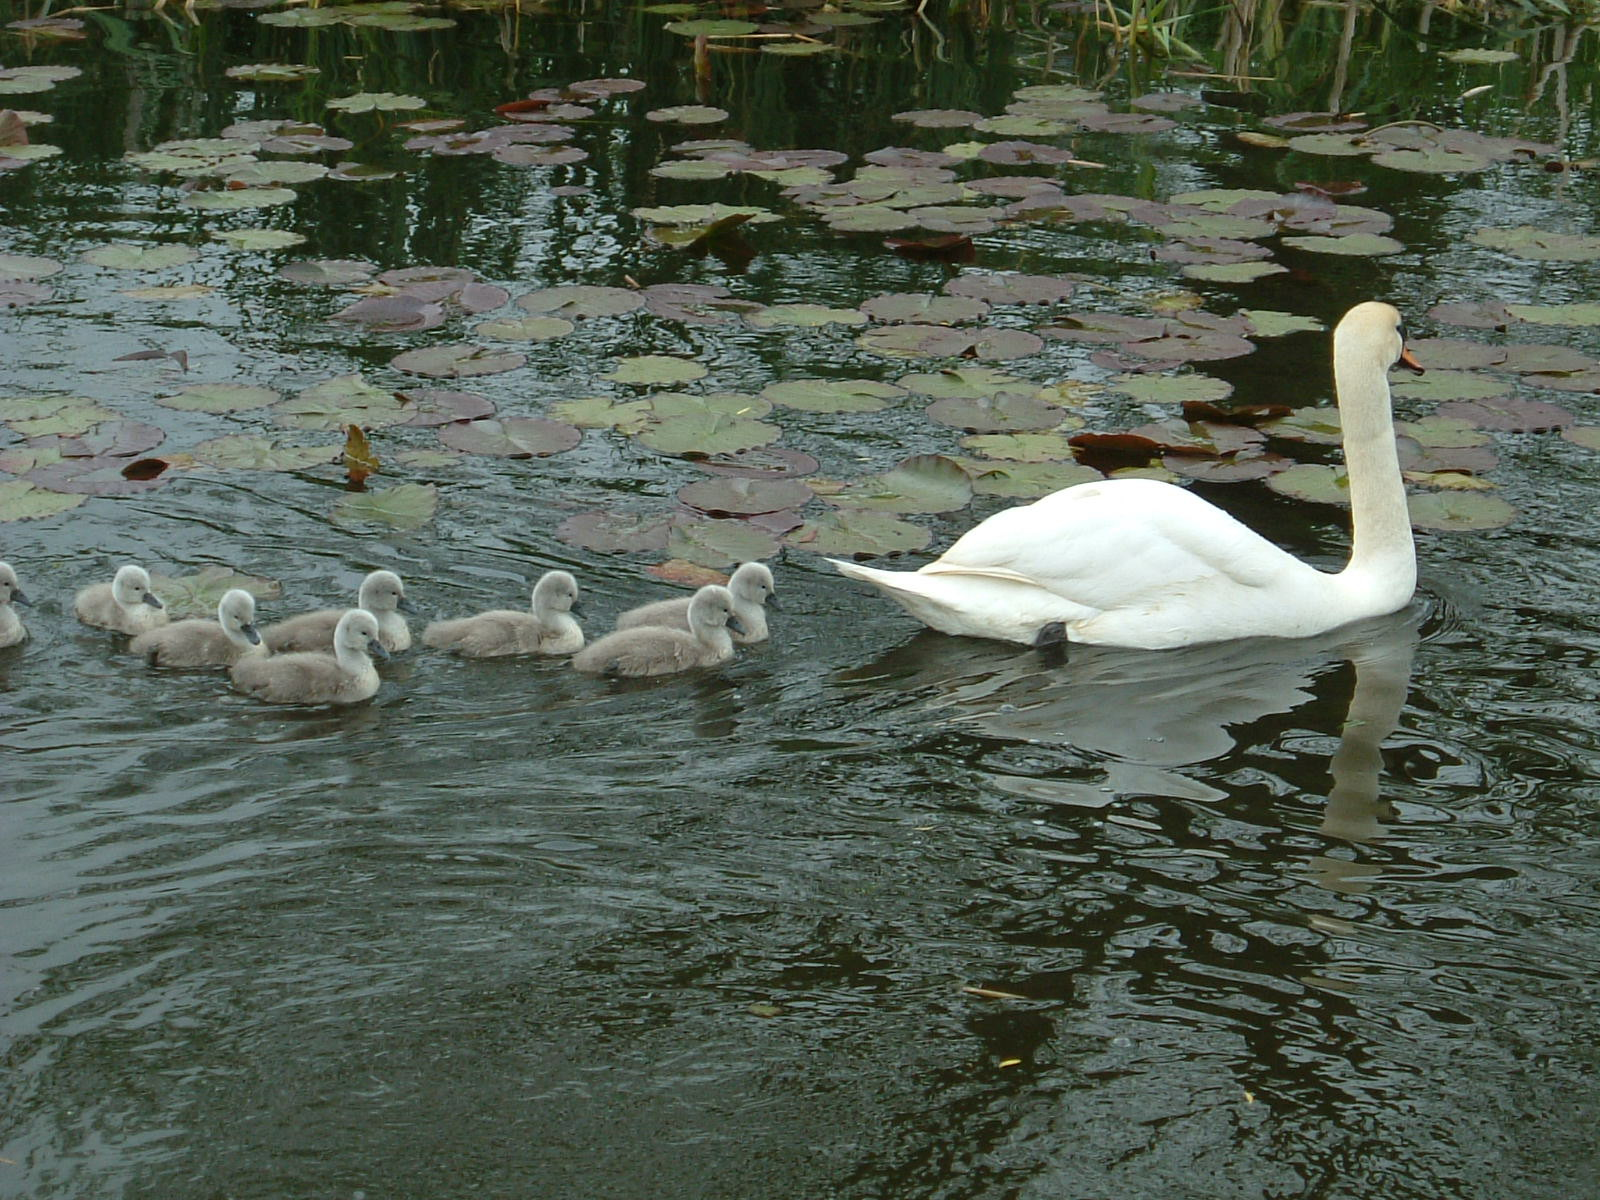 A family of swans in Sampford Peverell